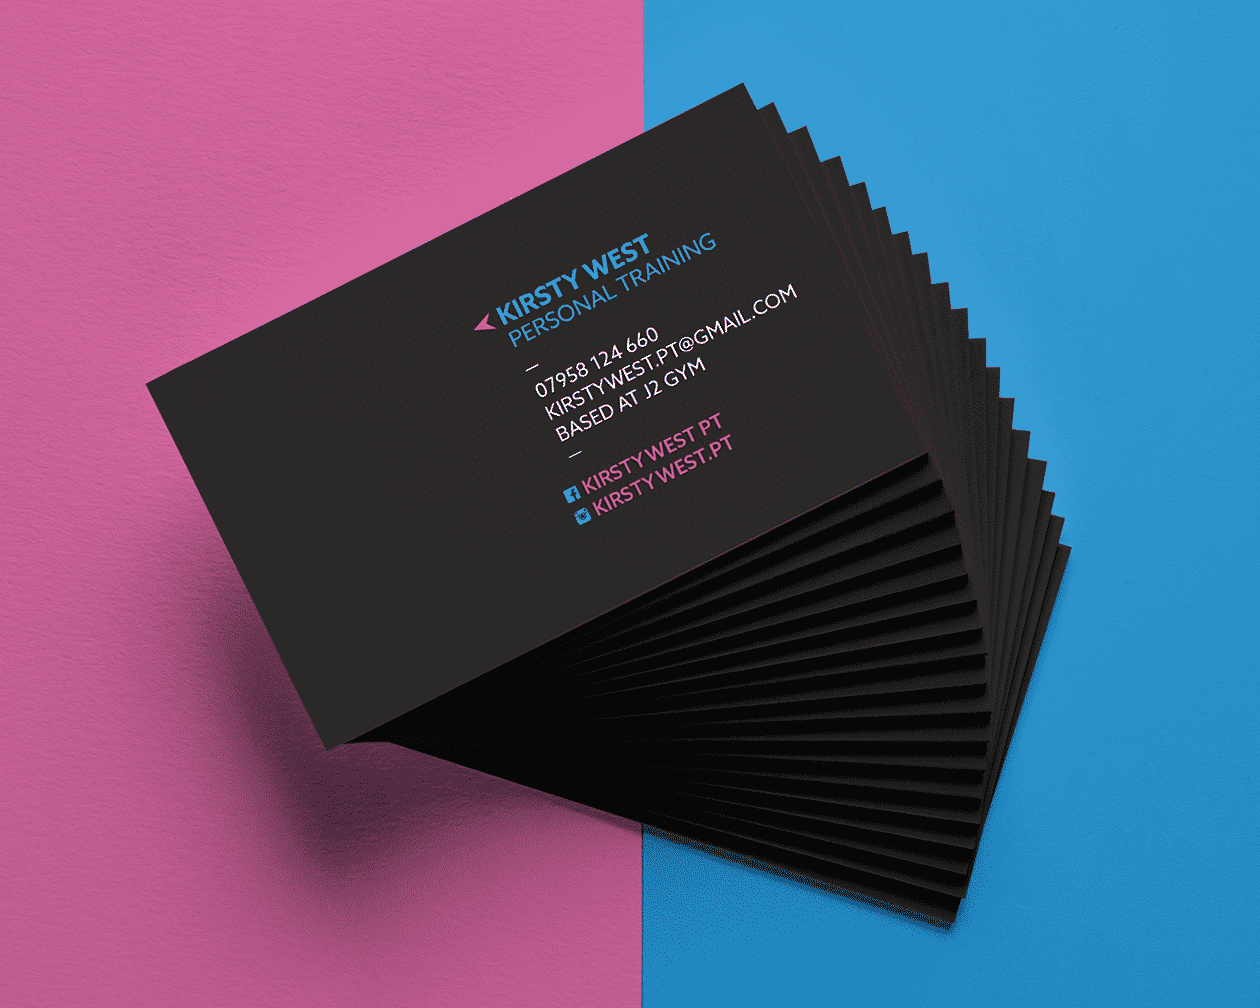 Kirsty West Business Card Stack